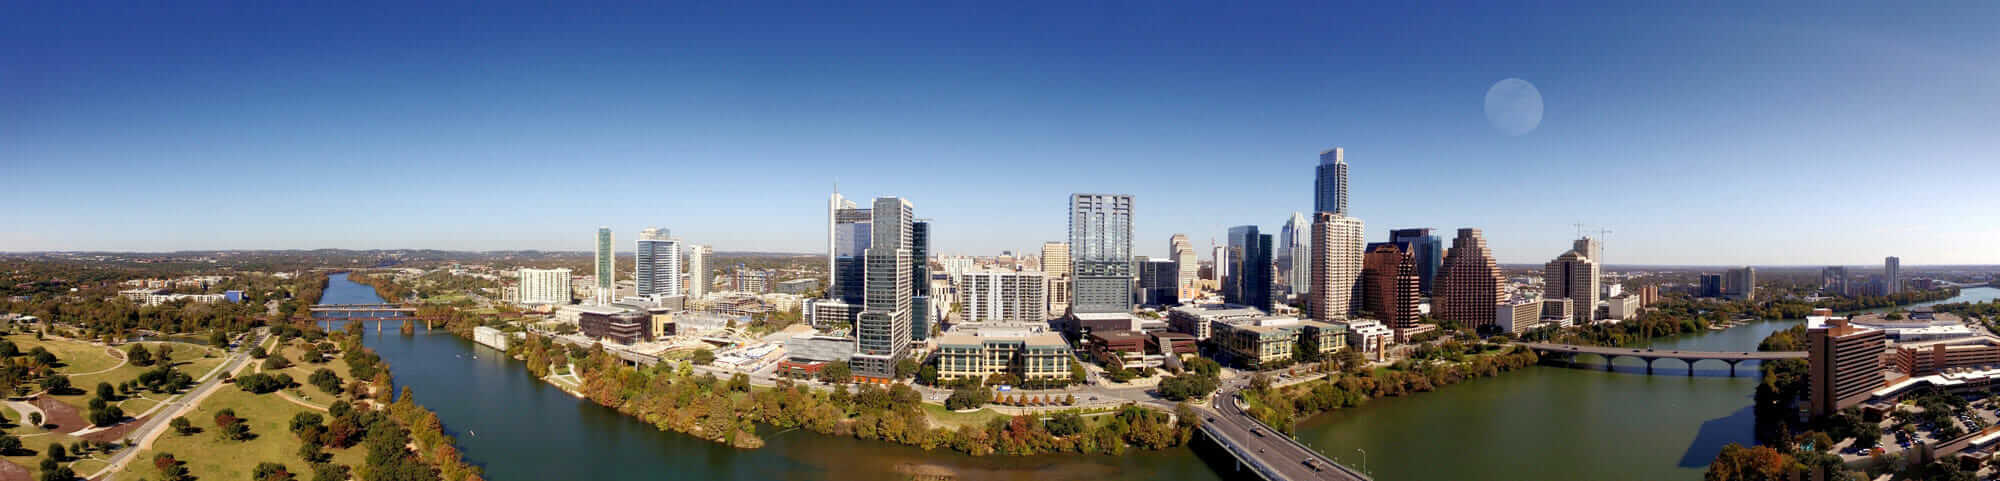 Panoramic view of Downtown Austin, Texas showing bridges and civil engineering projects